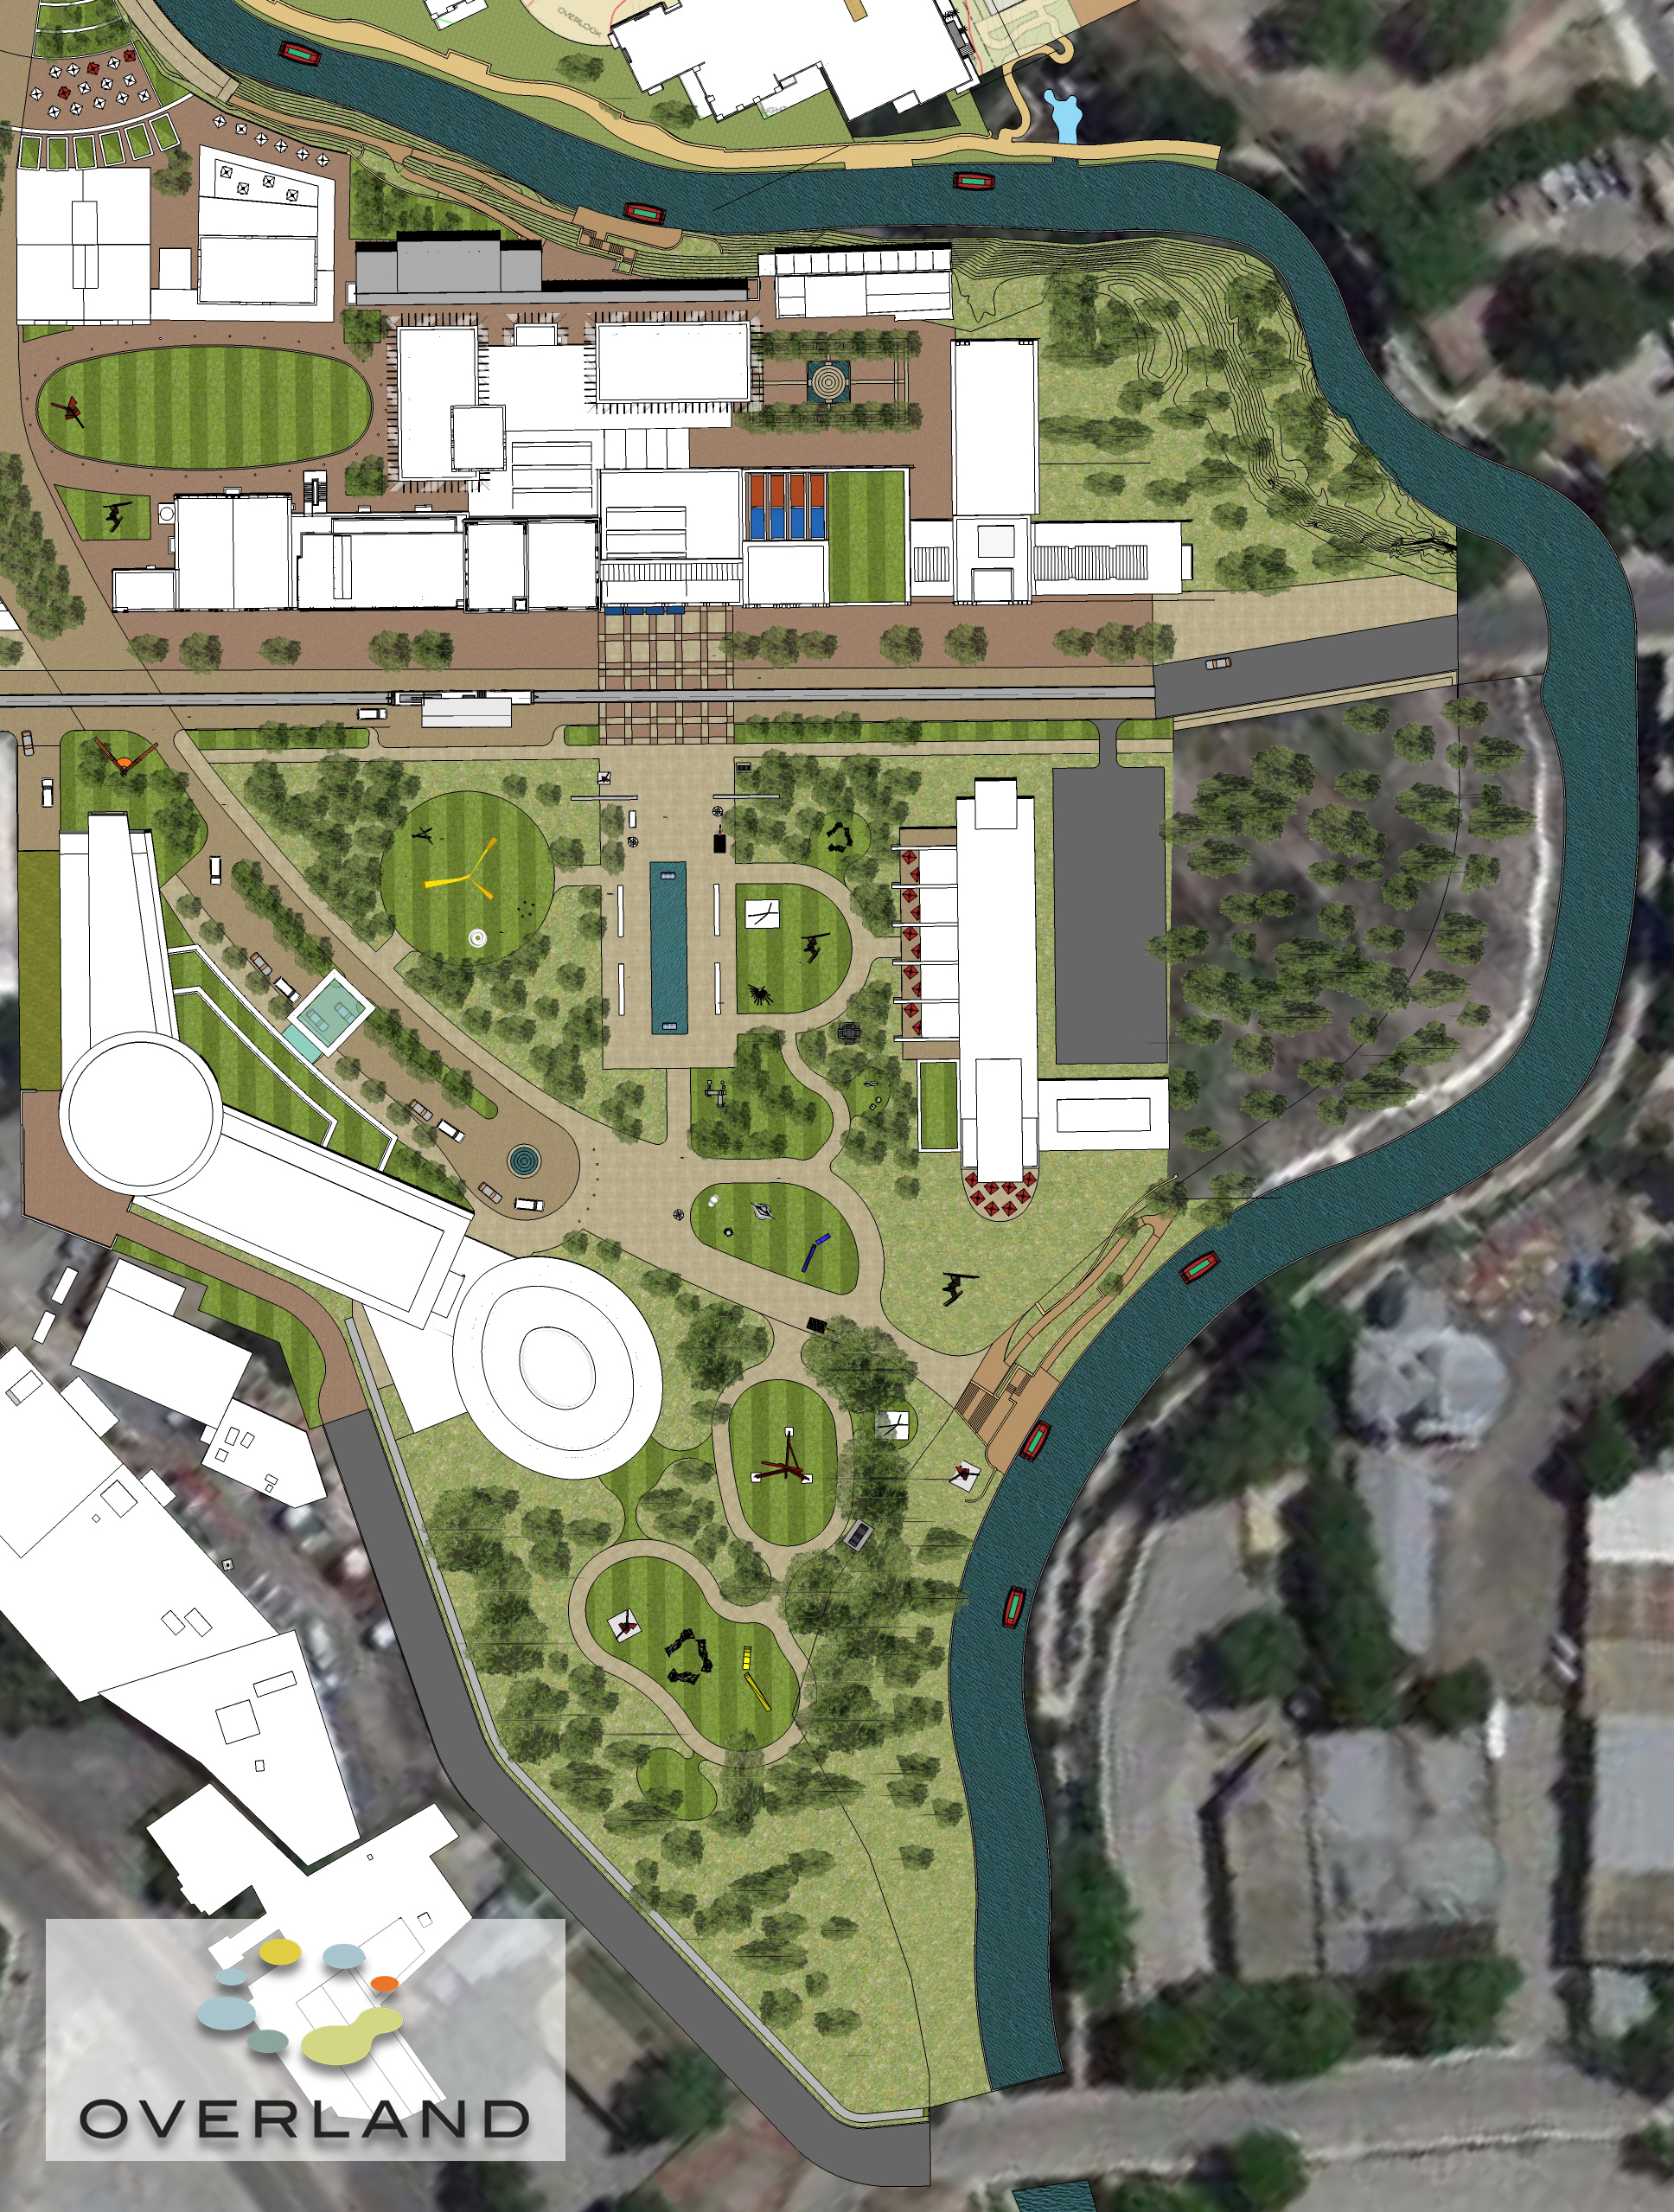 Rendering of a drafted site plan for the future of SAMA. Image created by and courtesy of Overland Partners   Architects. (Click for larger image.)